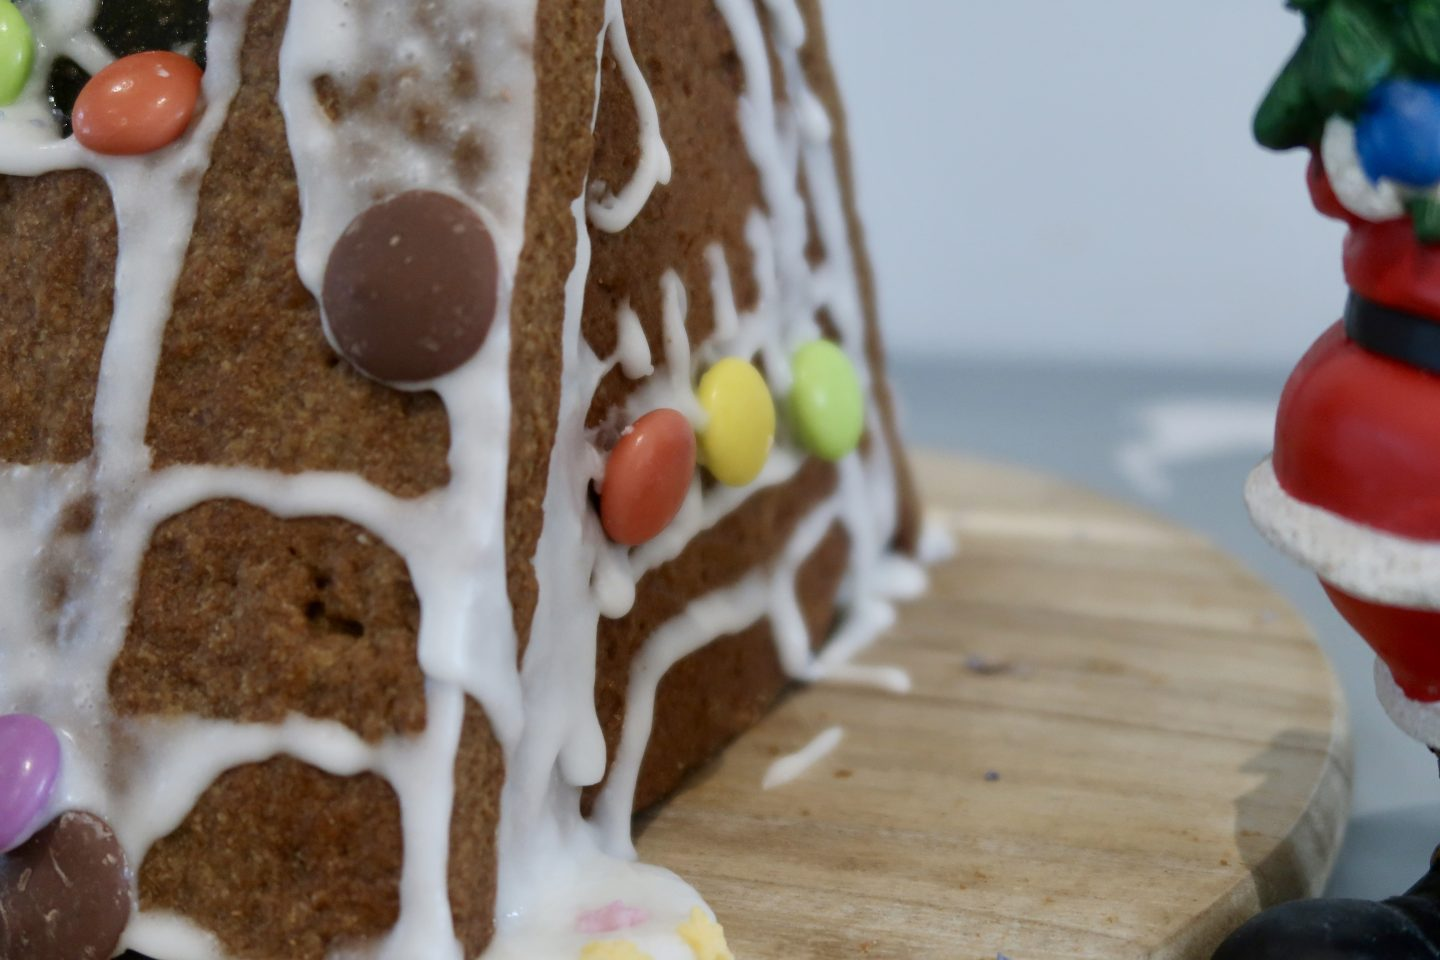 The side of a gingerbread house decorated with smarties